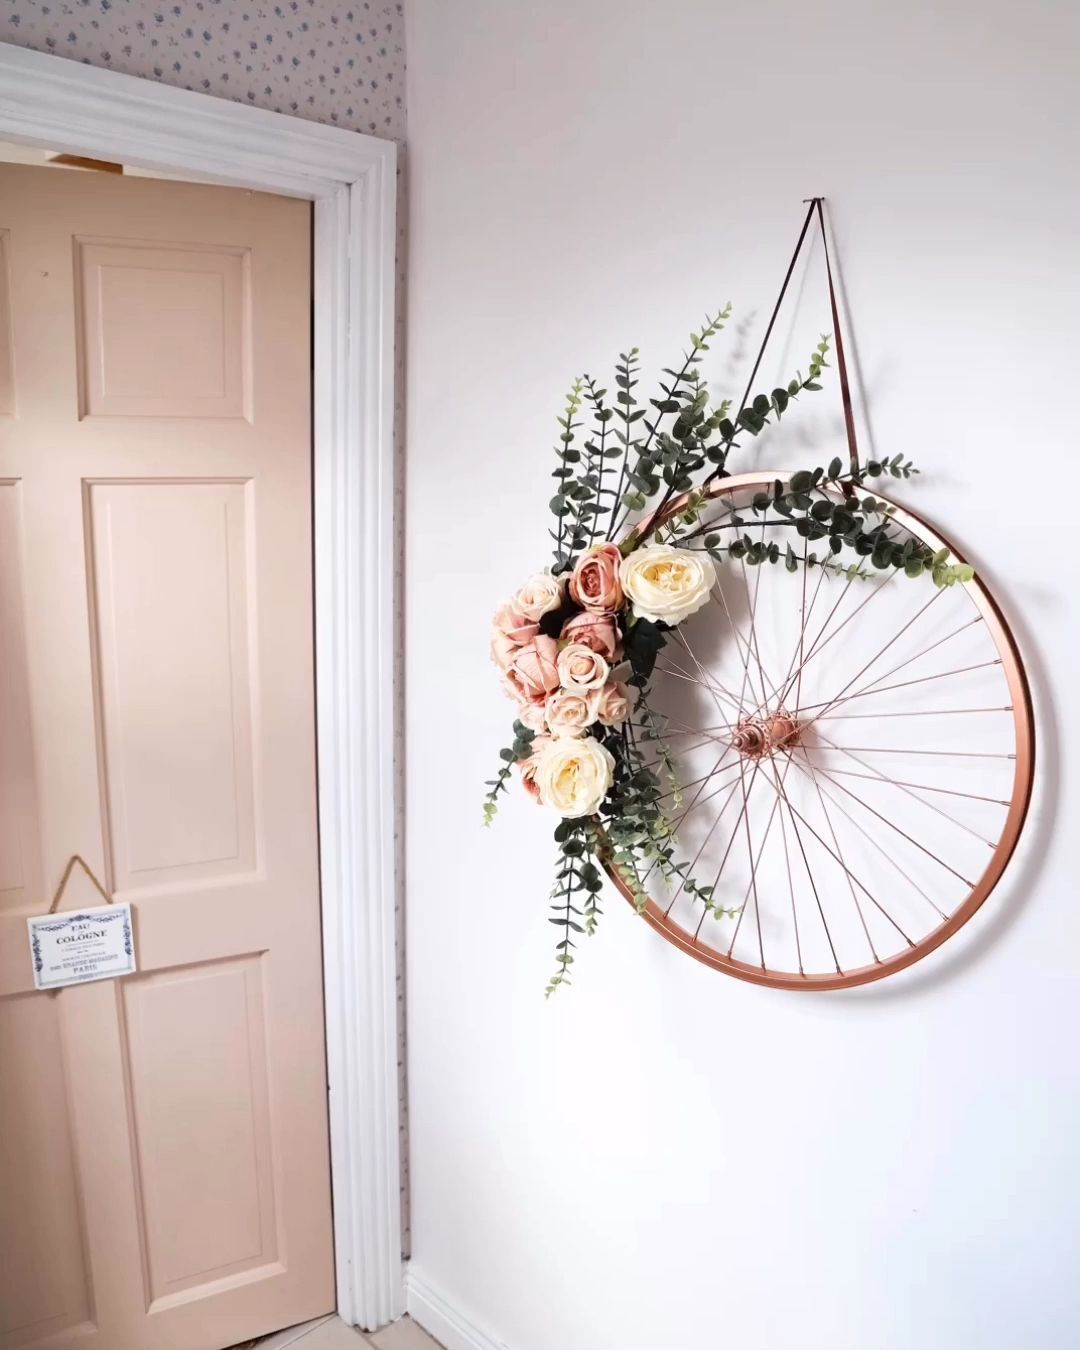 Transform an old bike frame into a #wreath by using some faux flowers and spray paint! Recycle and make the best of waste #homedecor #homedecoration #homedecorating #homedecore #homedecorations #homedecorideas #homedecorlovers #homedecorblogger #homedecors #homedecorator #homedecorinspo #homedecorationideas #homedecorate #homedecorinspiration #homedecormurah #homedecorlover